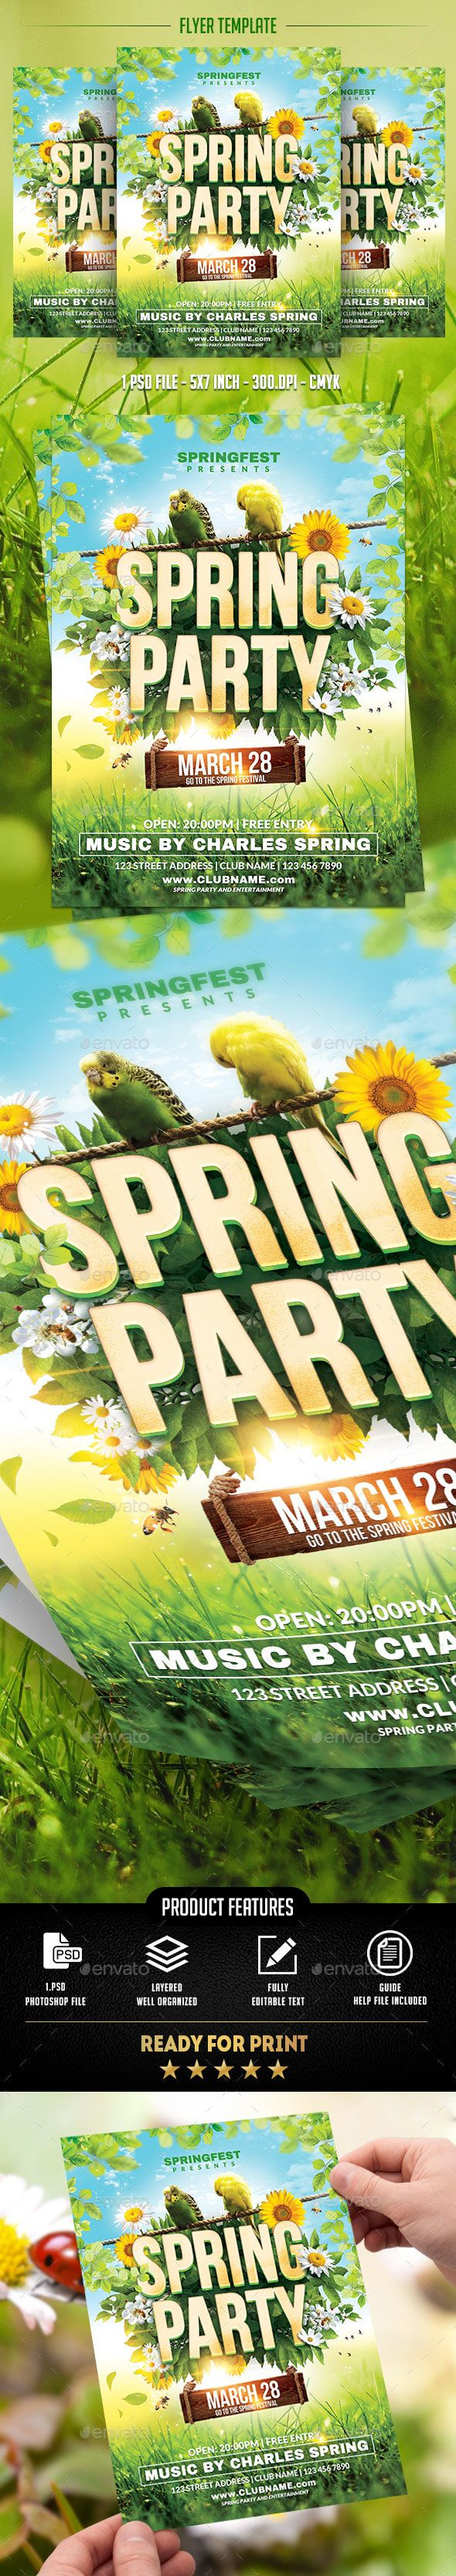 Spring Party Flyer Template  Party Flyer Flyer Template And Template